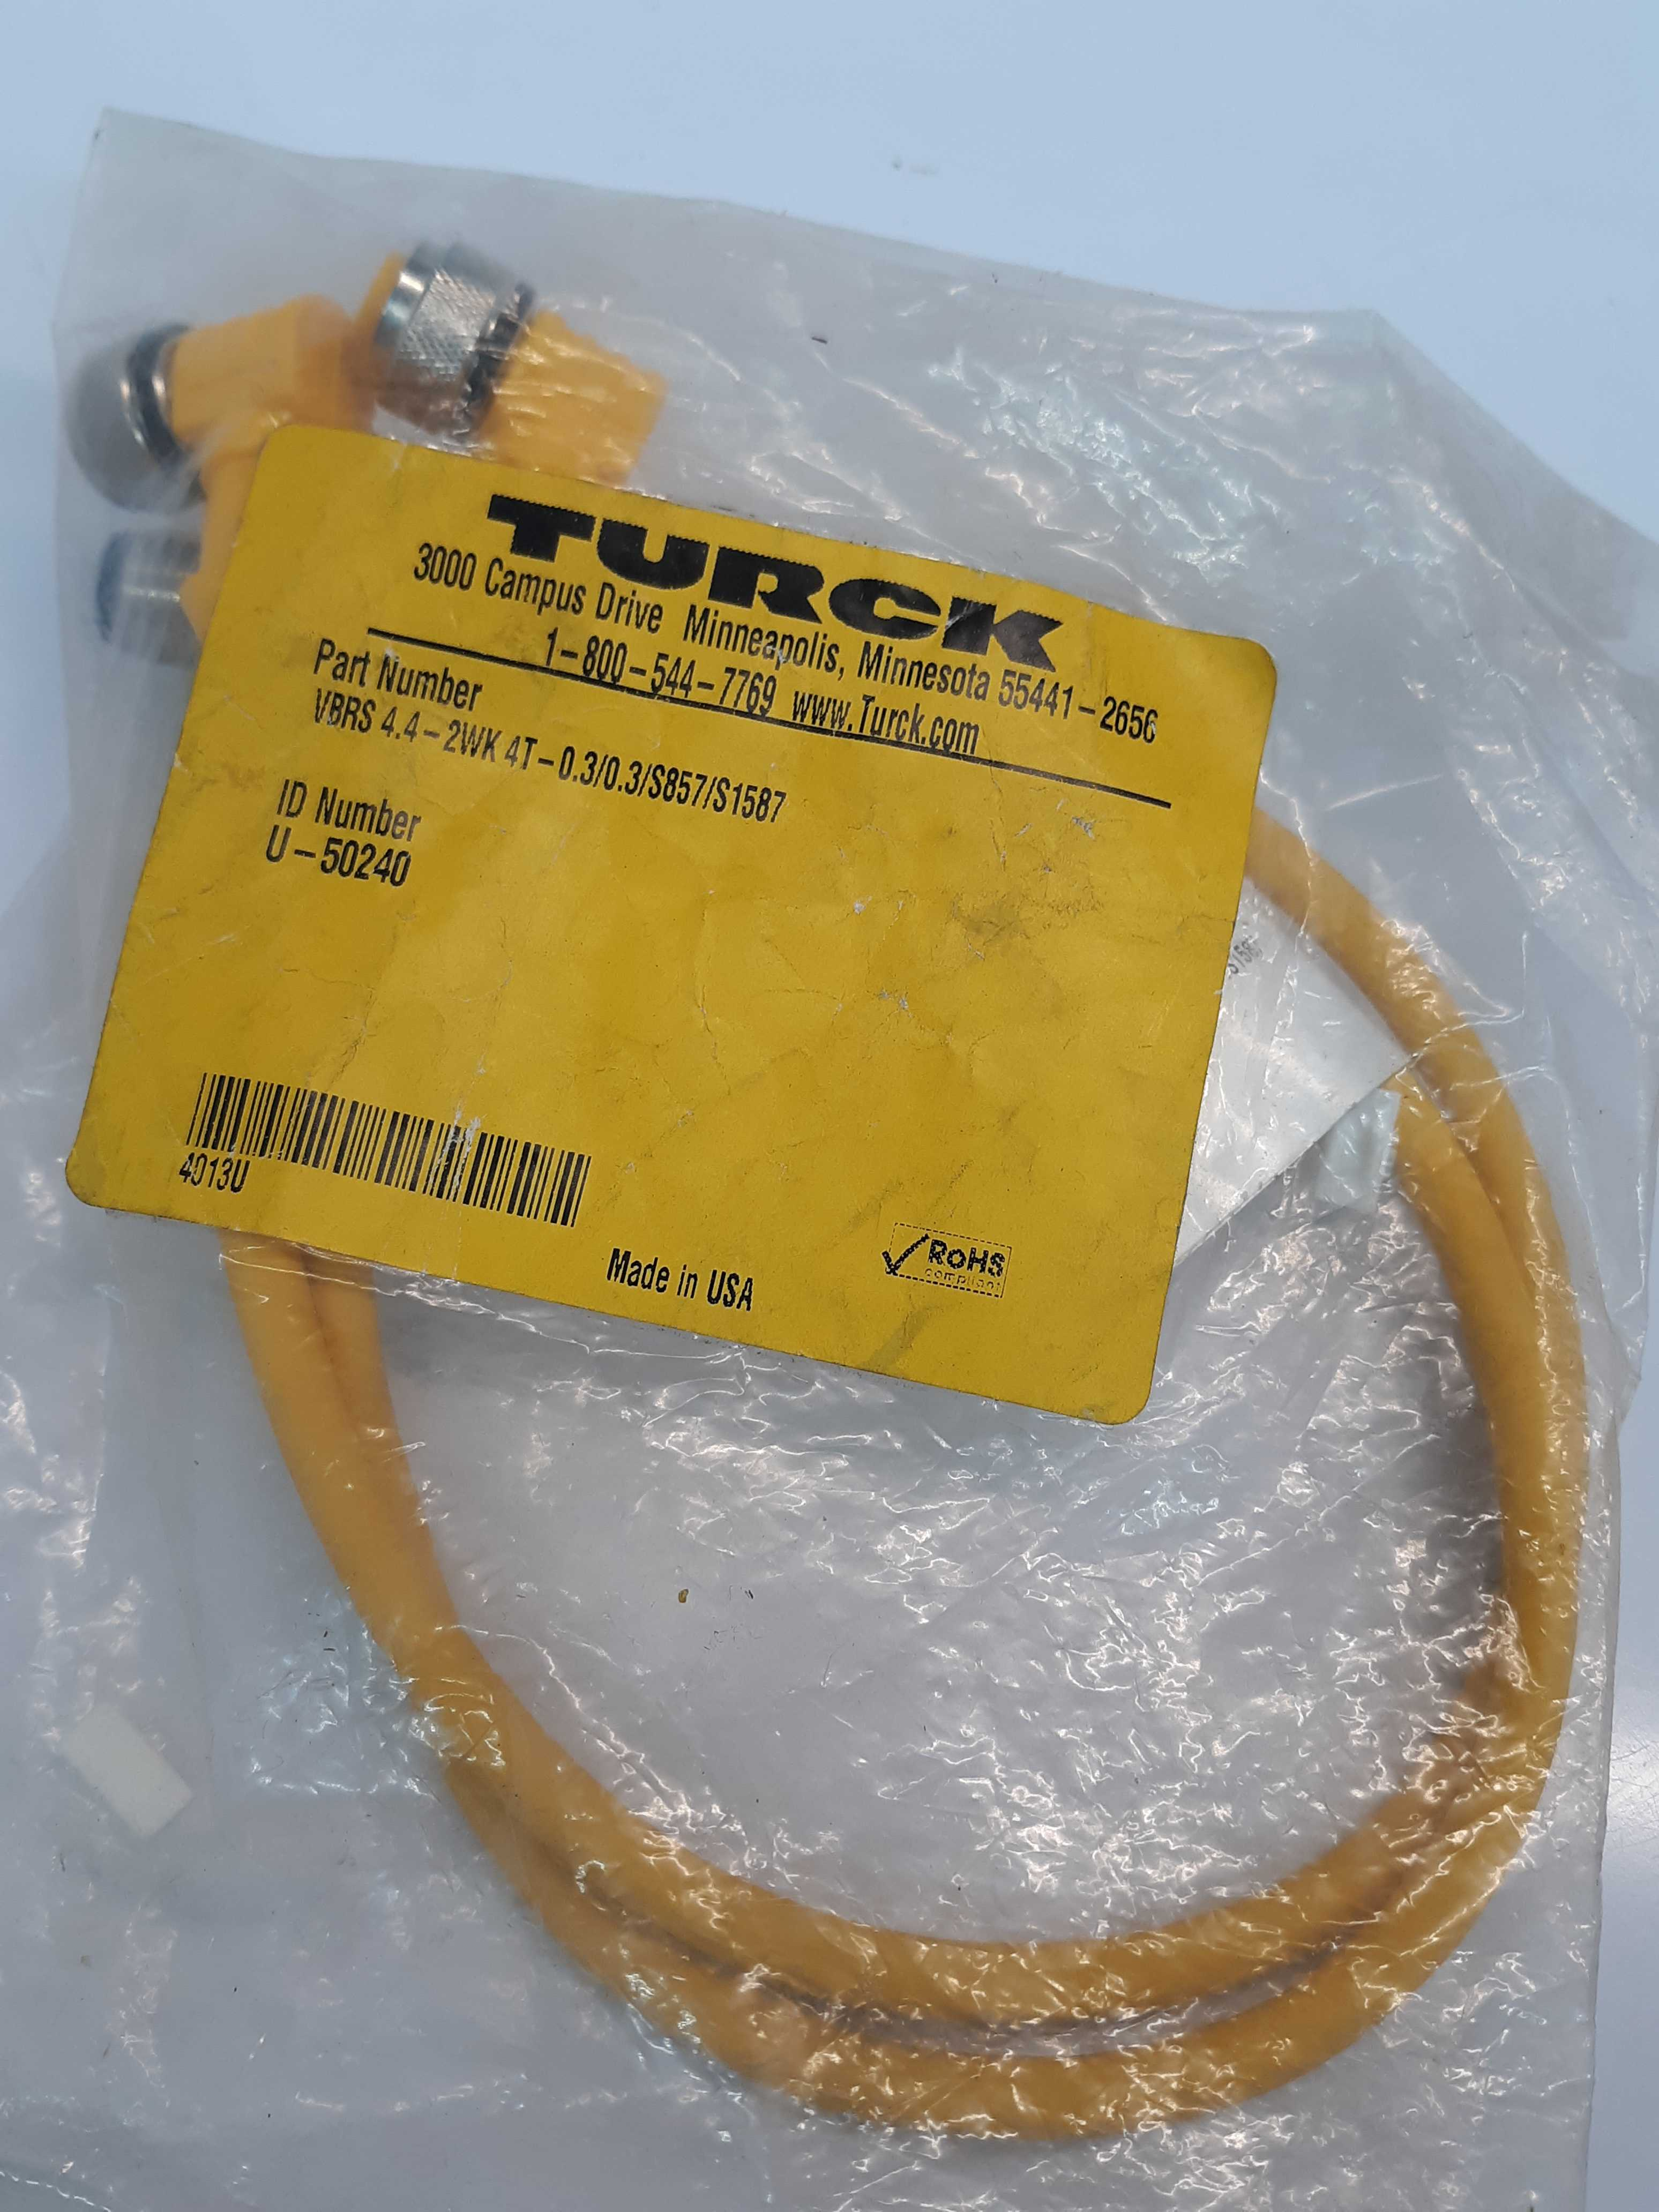 Turck VBRS 4.4-2WK 4T-0.3/0.3/S857/S1587 Cordset Two Female To Male U-50240